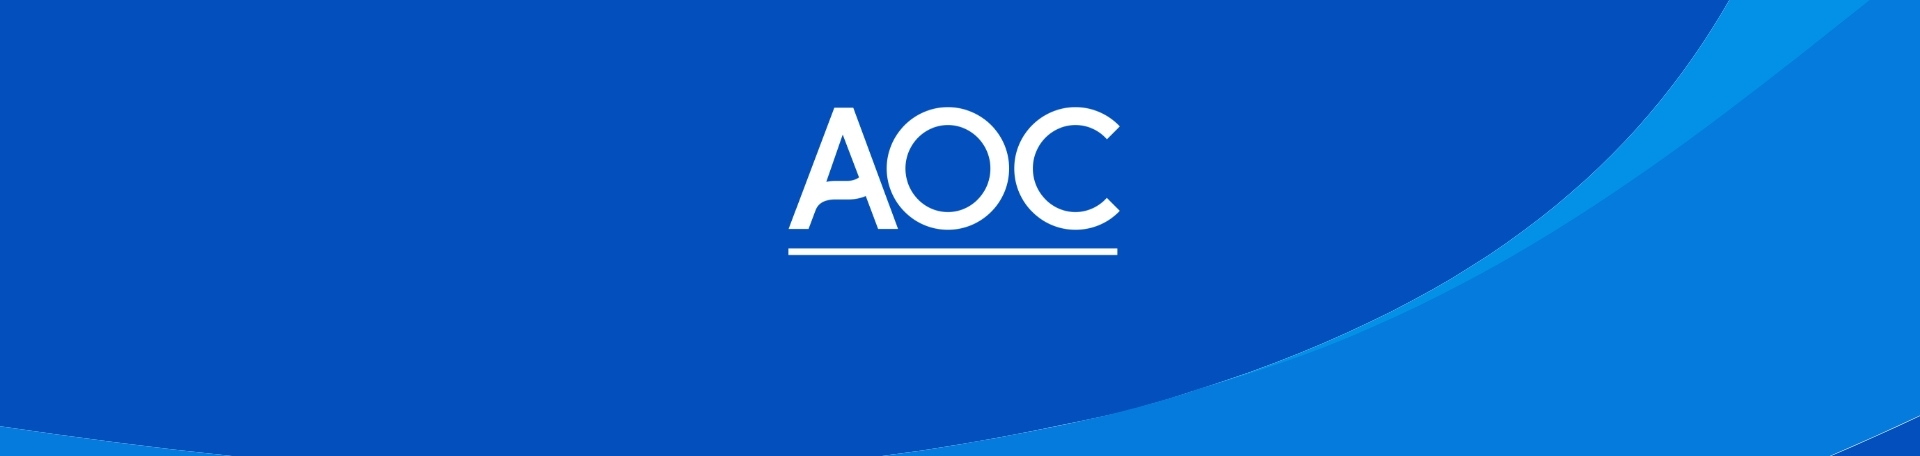 AOC Announces Price Increase for Americas